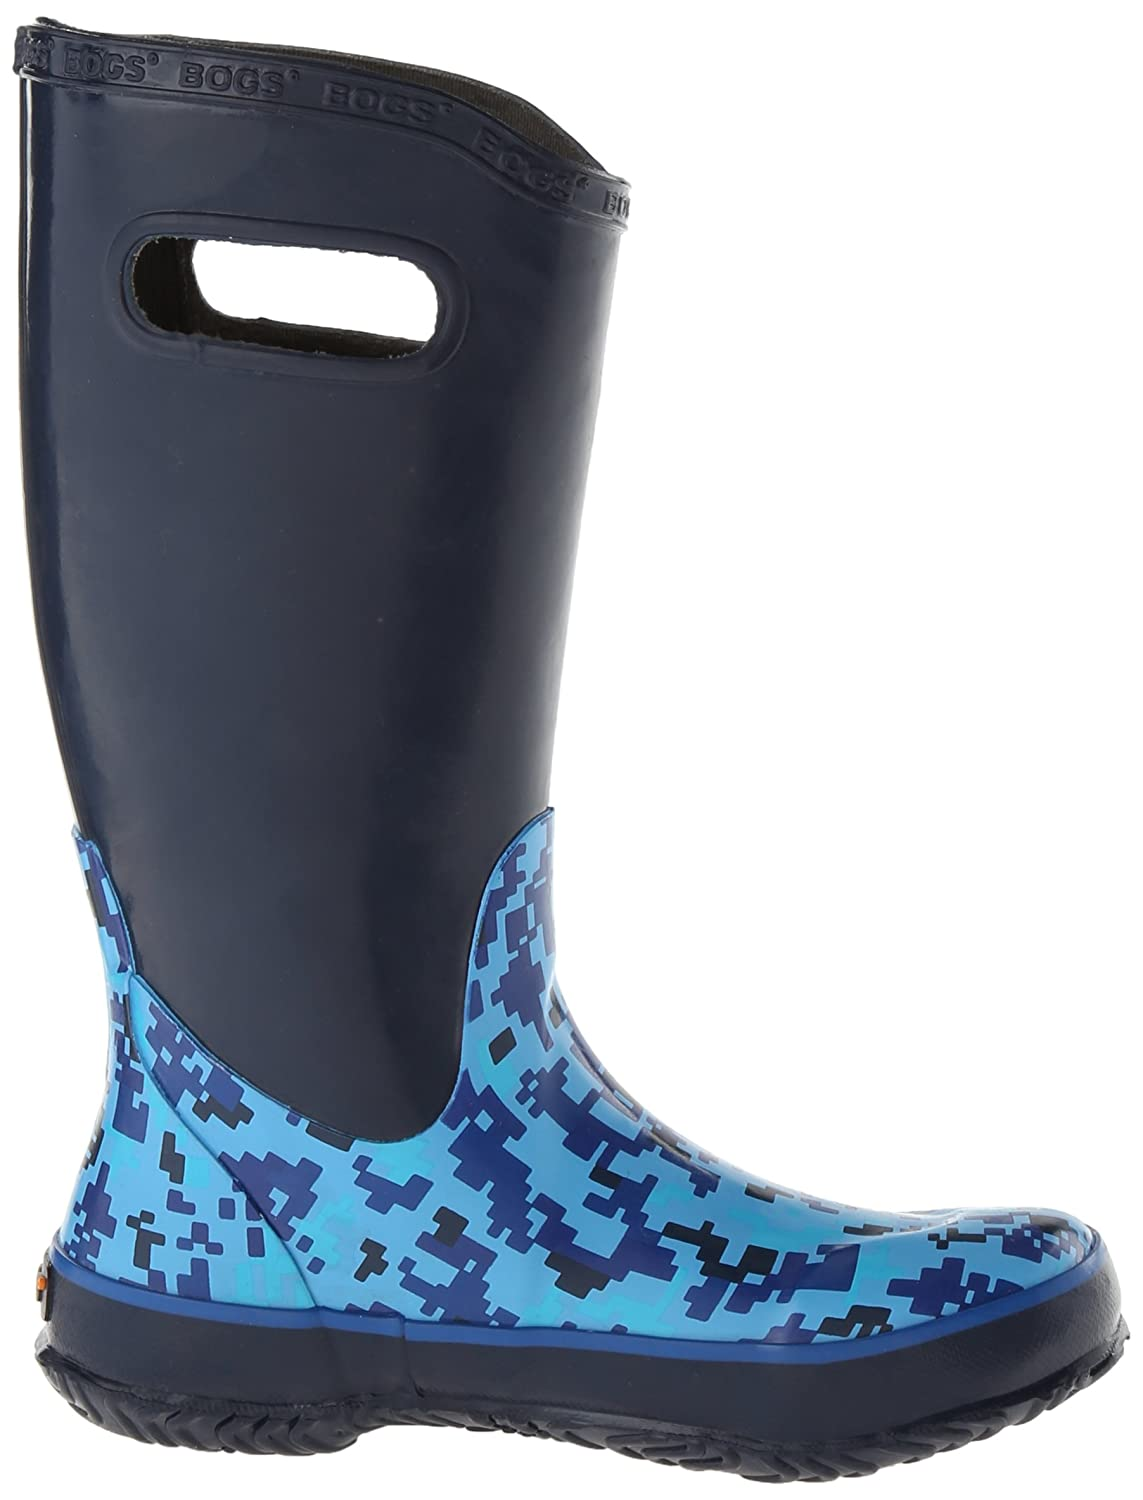 Bogs Kids Rubber Boot Waterproof Boys and Girls Rain Bogs Kids/' Rubber Boot Waterproof Boys and Girls Rain Rainboot K